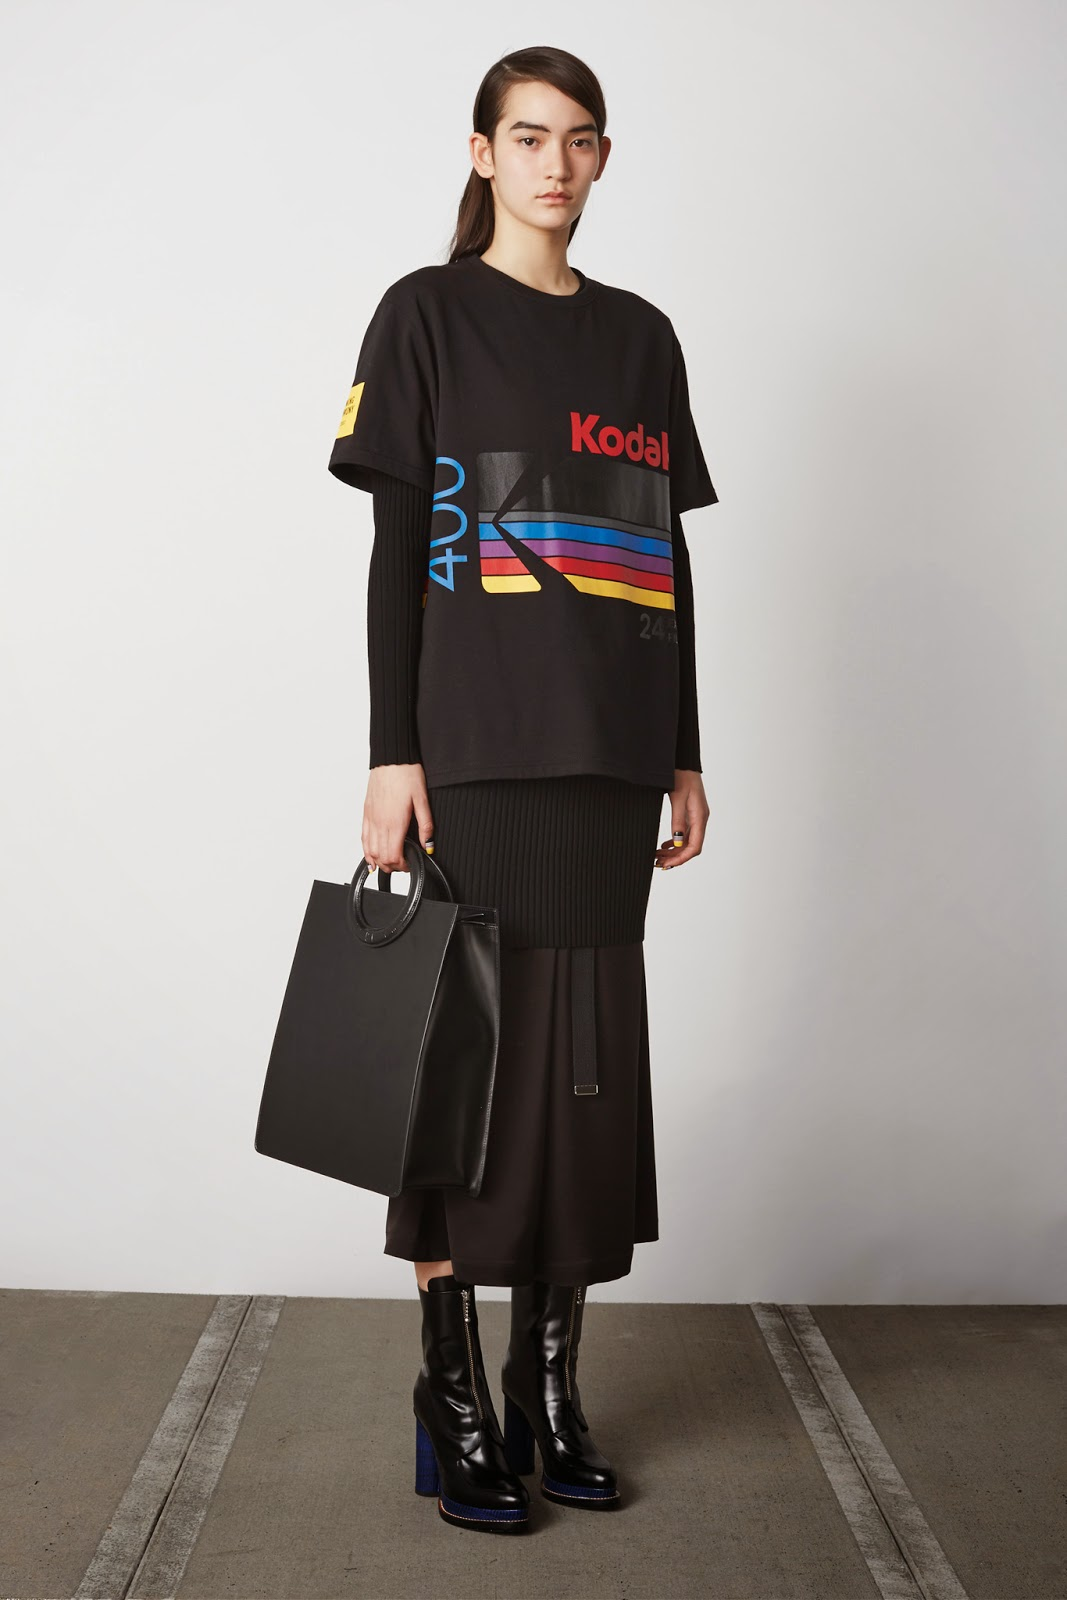 Opening Ceremony Fall Winter 2015 black short sleeved Kodak print sweater, black skirt, black tote